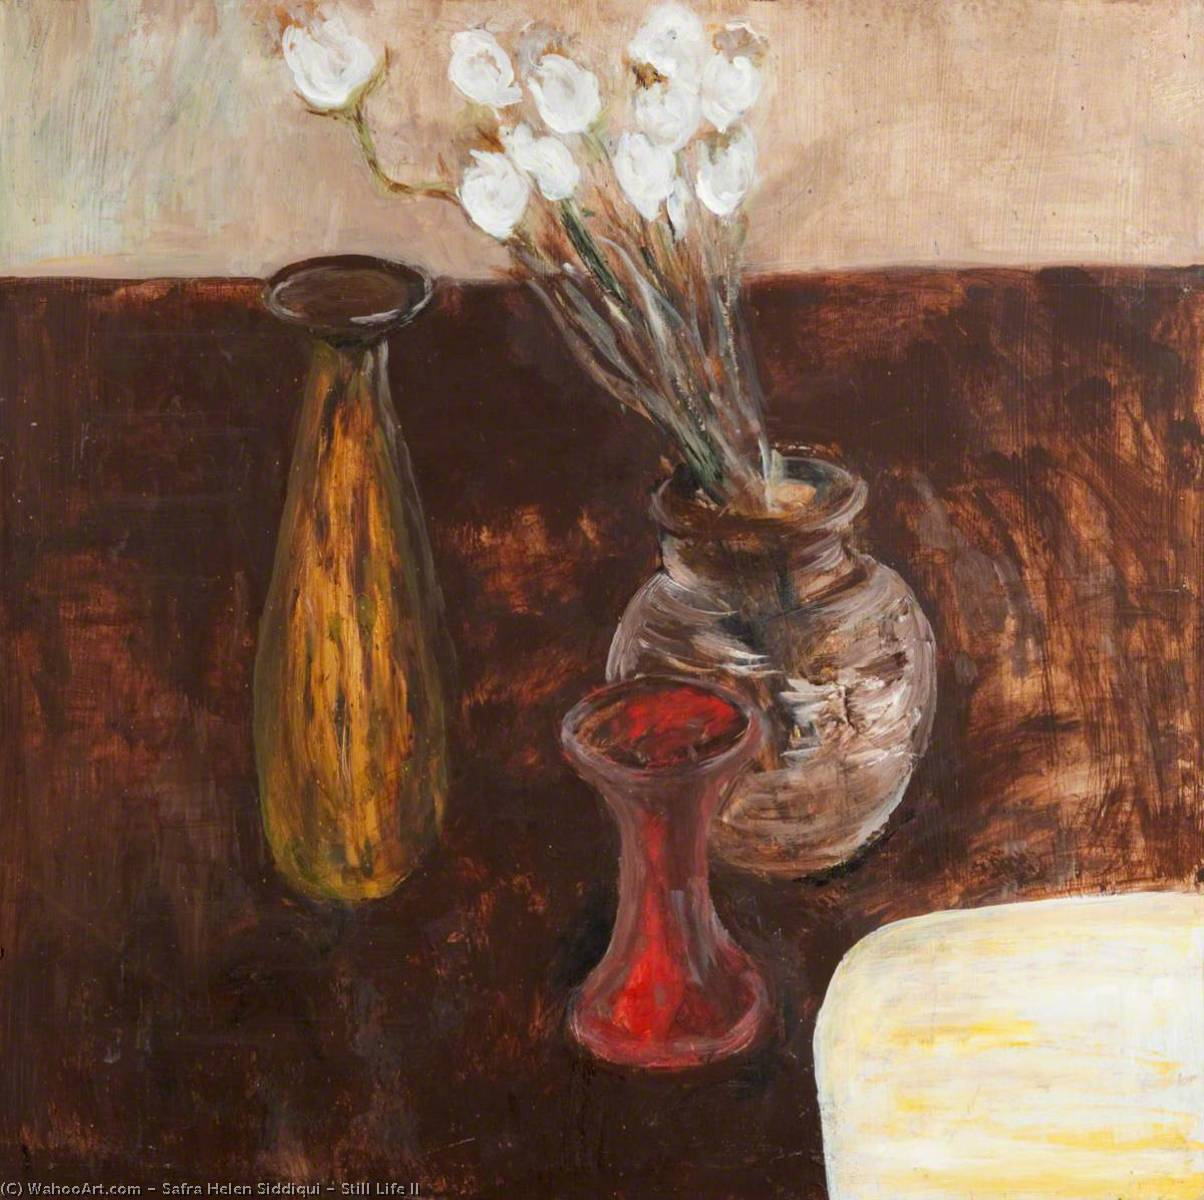 Still Life II by Safra Helen Siddiqui | Paintings Reproductions Safra Helen Siddiqui | WahooArt.com